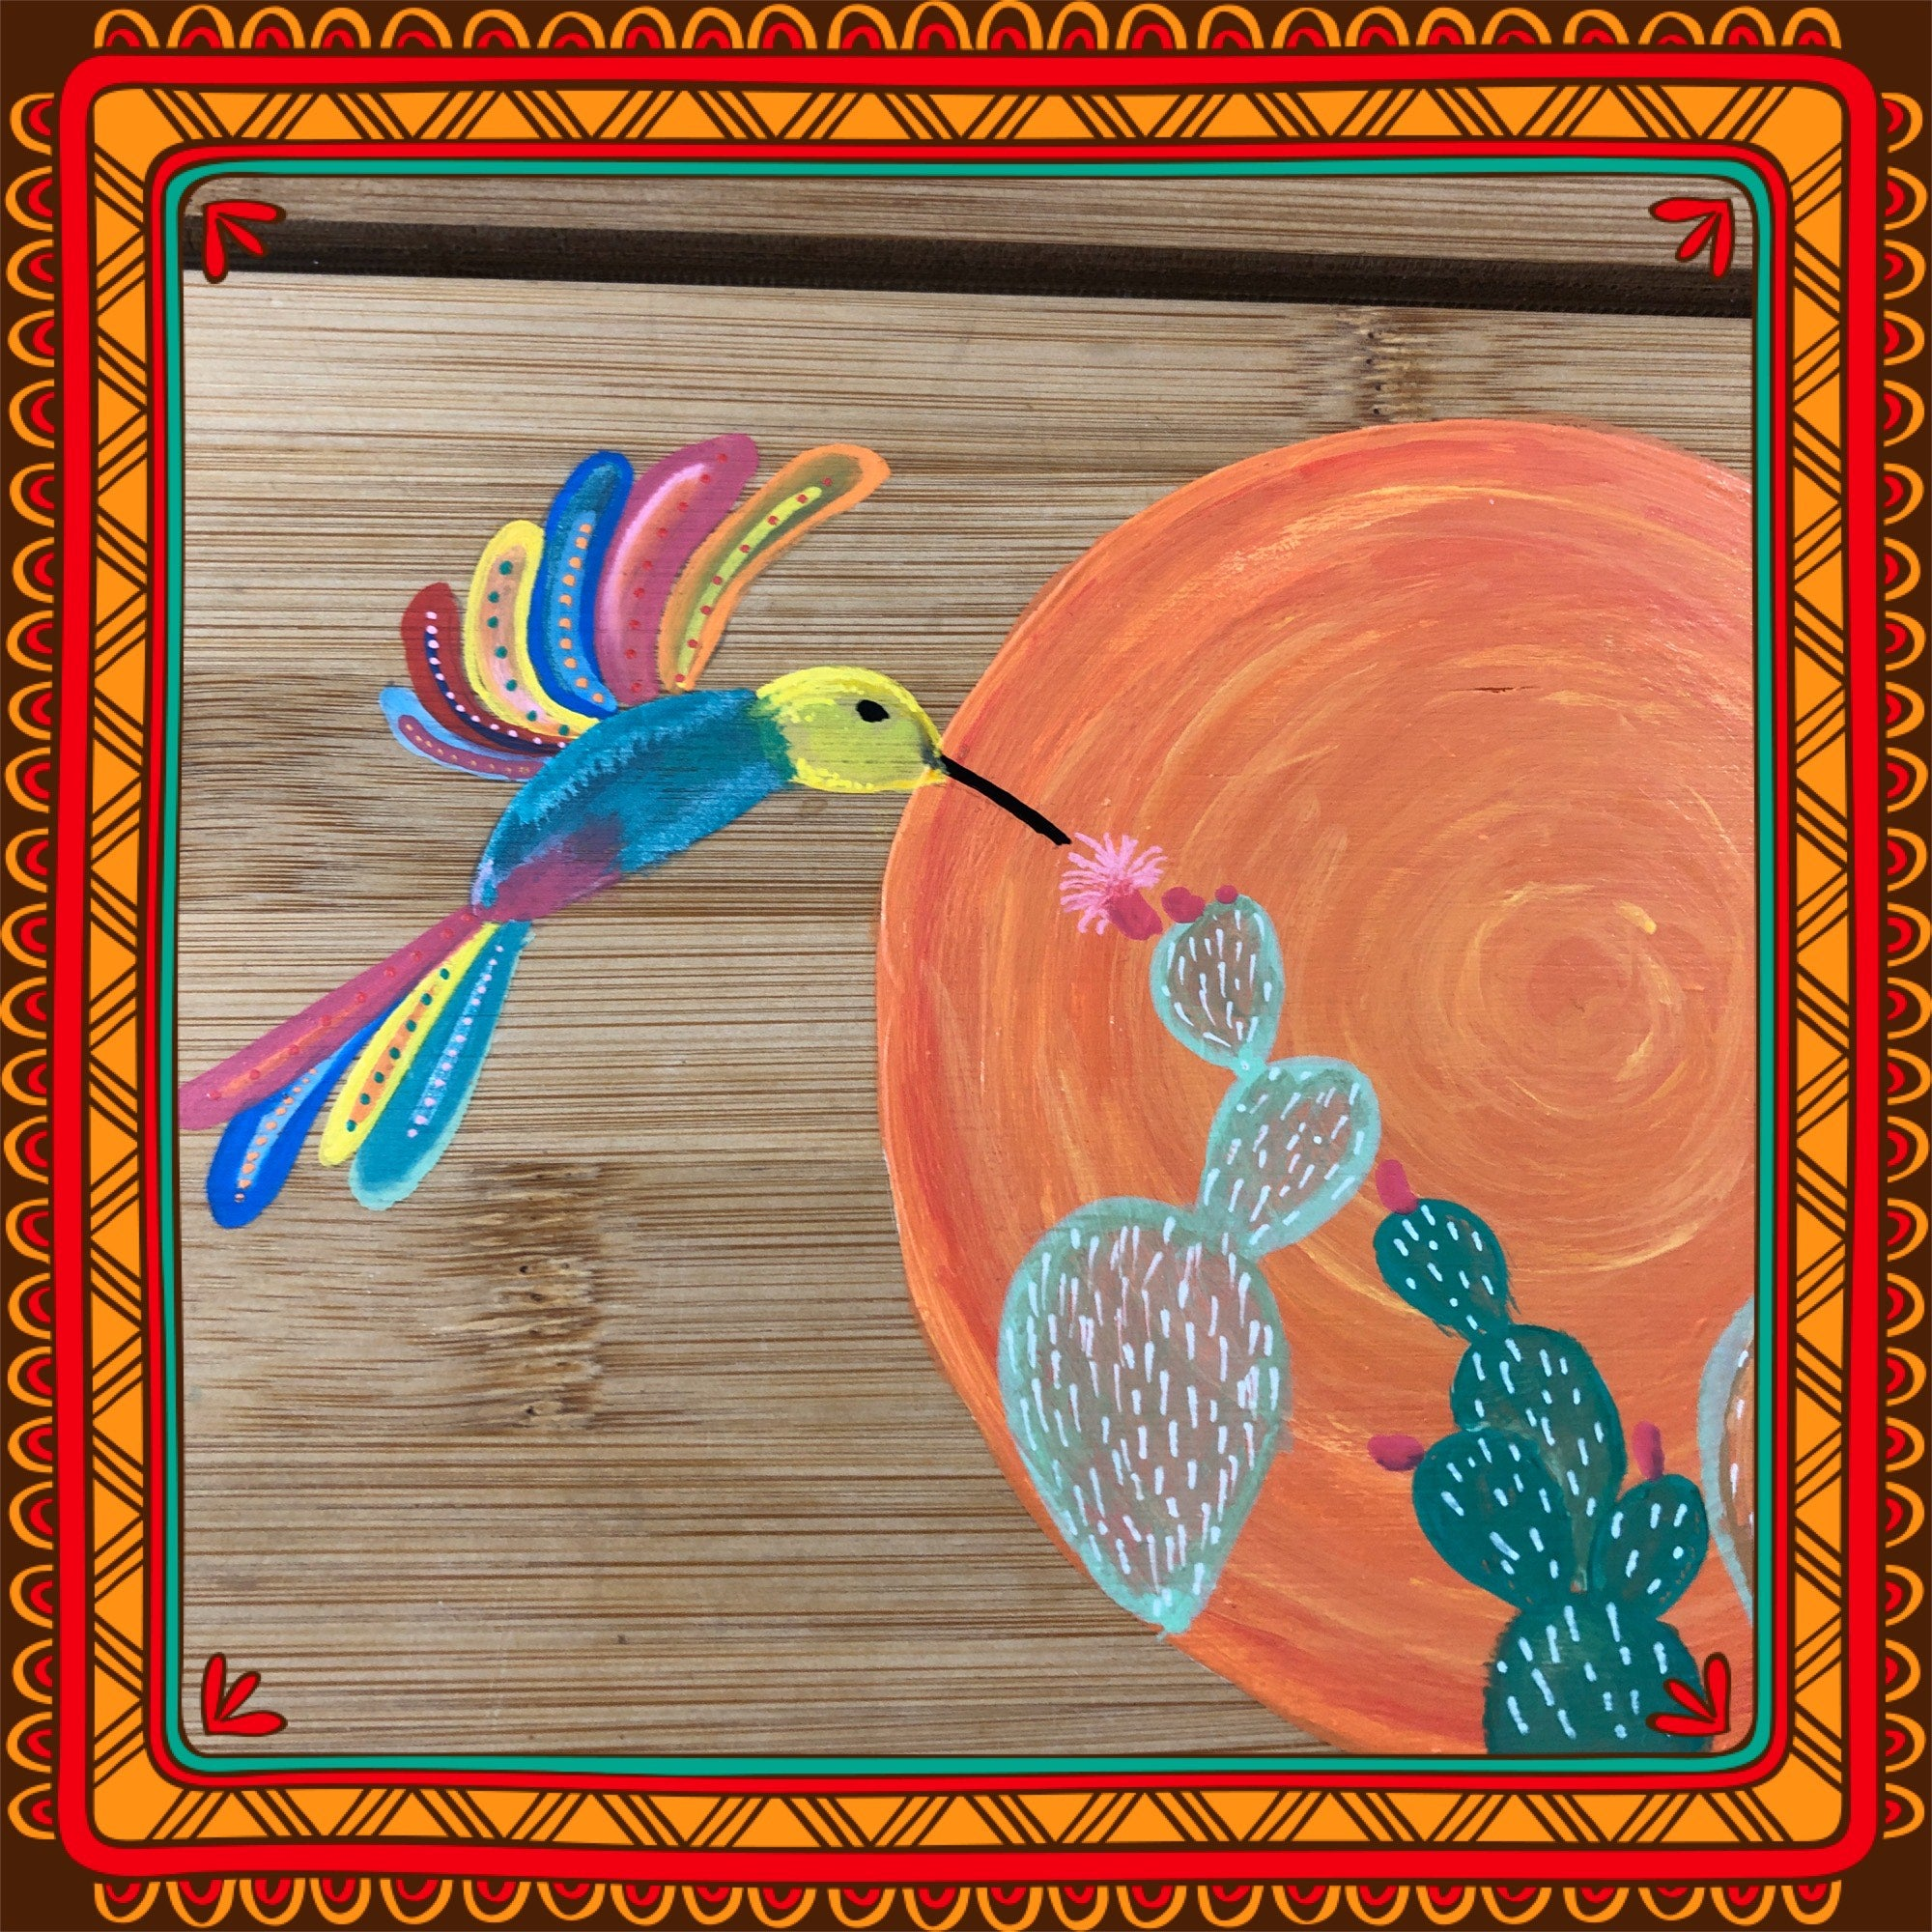 Hummingbird Mexican Folkart inspired painting